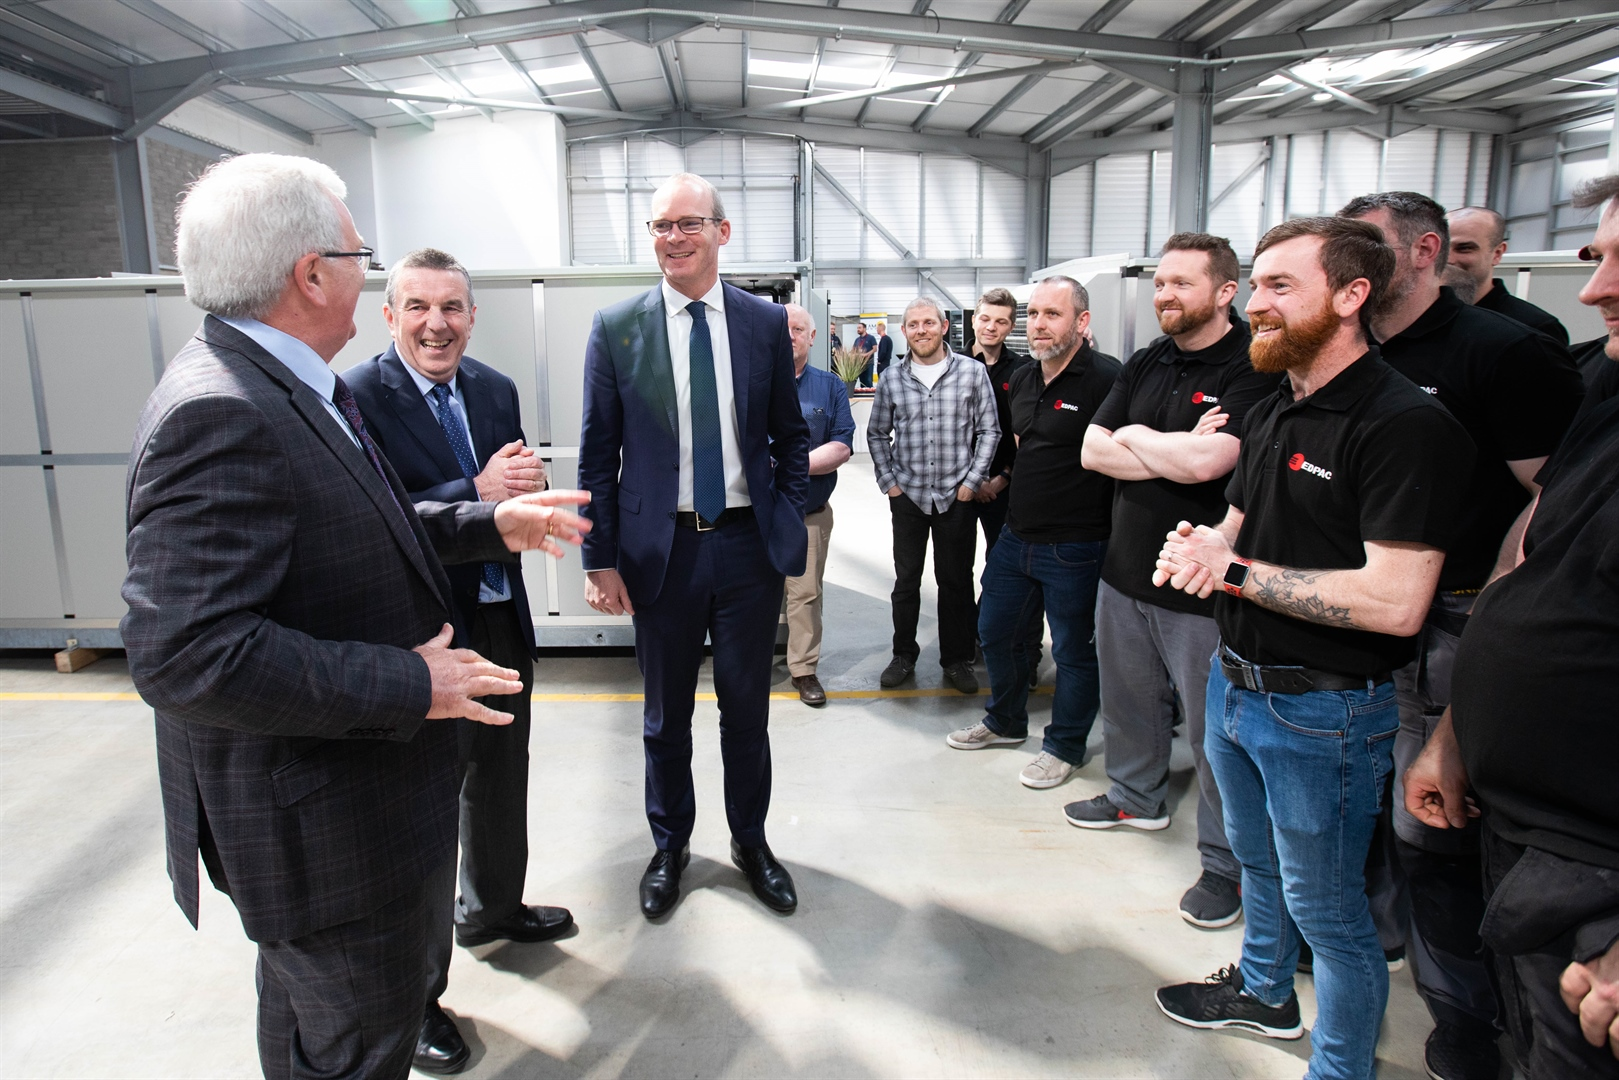 EDPAC doubles size of Cork manufacturing plant and creates